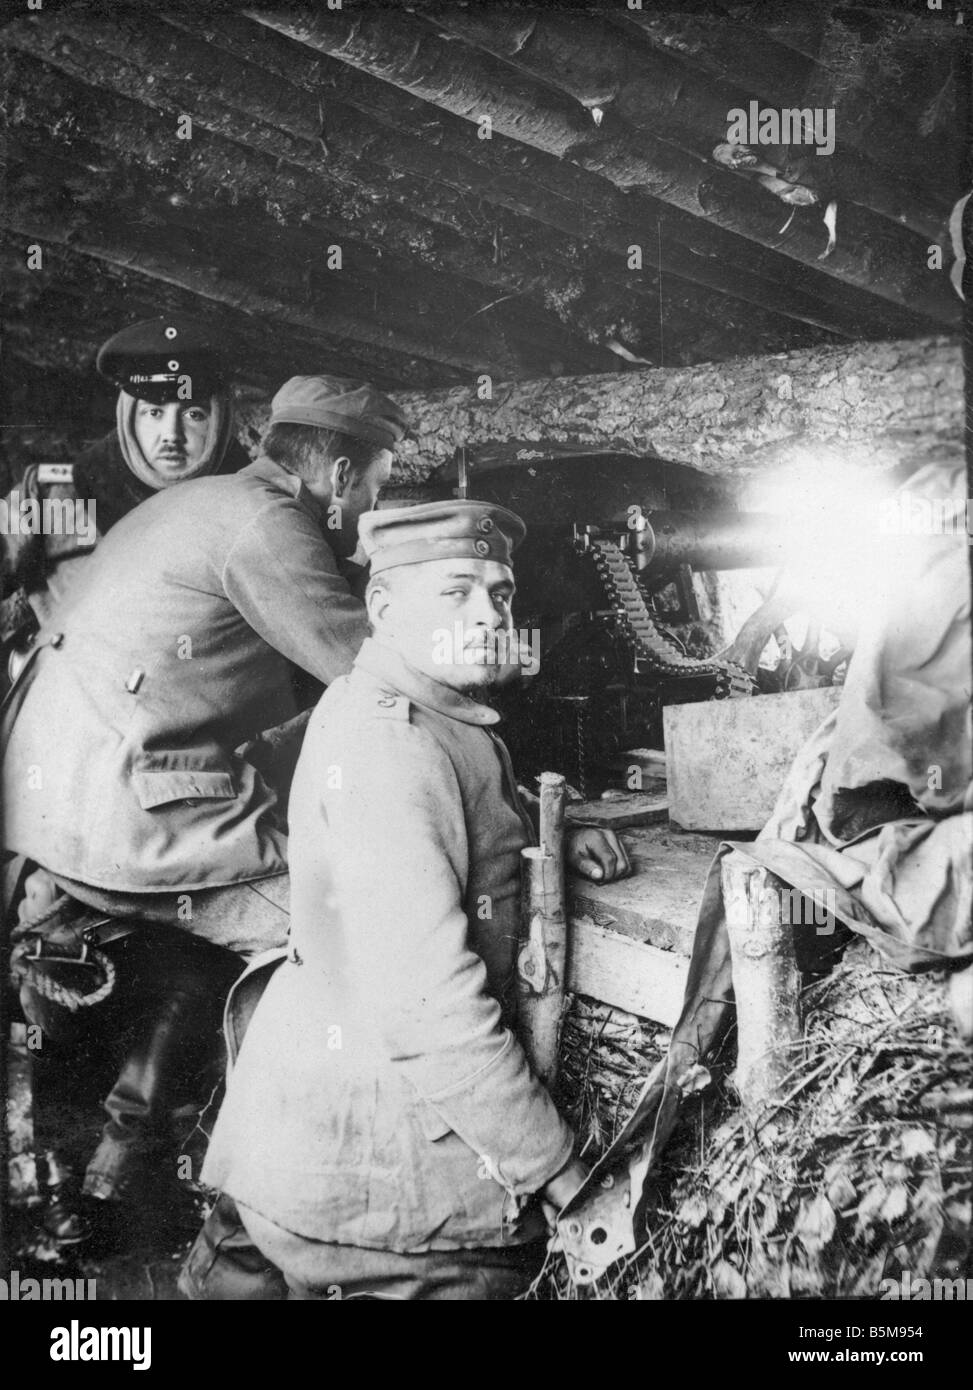 2 G55 O1 1916 35 German gun shelter Eastern Front 1916 History World War I Eastern Front A German machine gun position - Stock Image